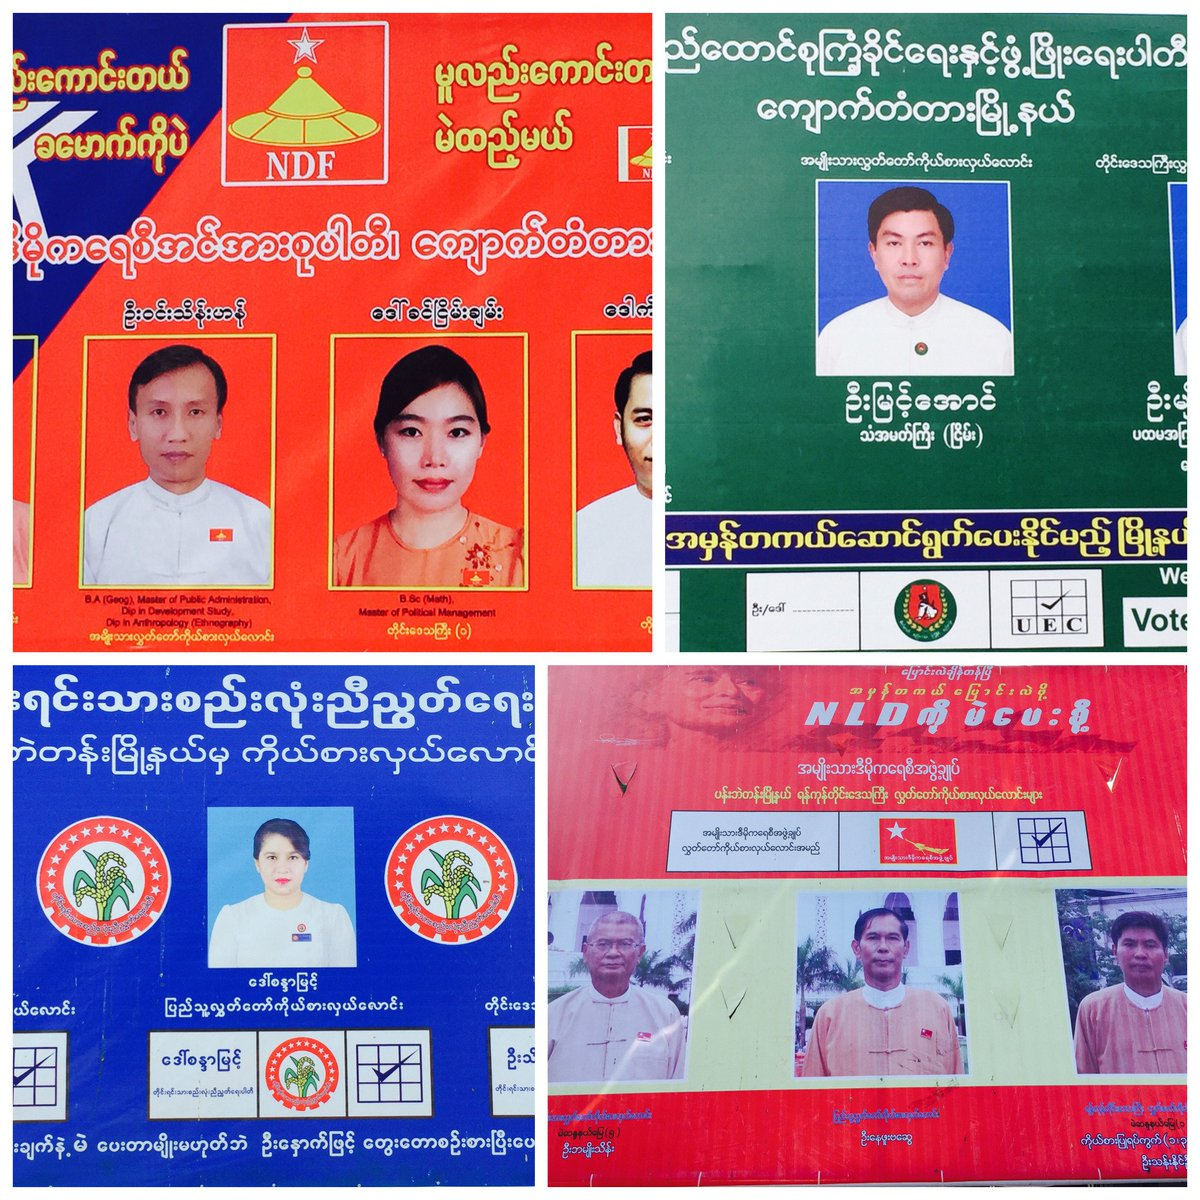 Thumbnail for 2015 #MyanmarElection Watch